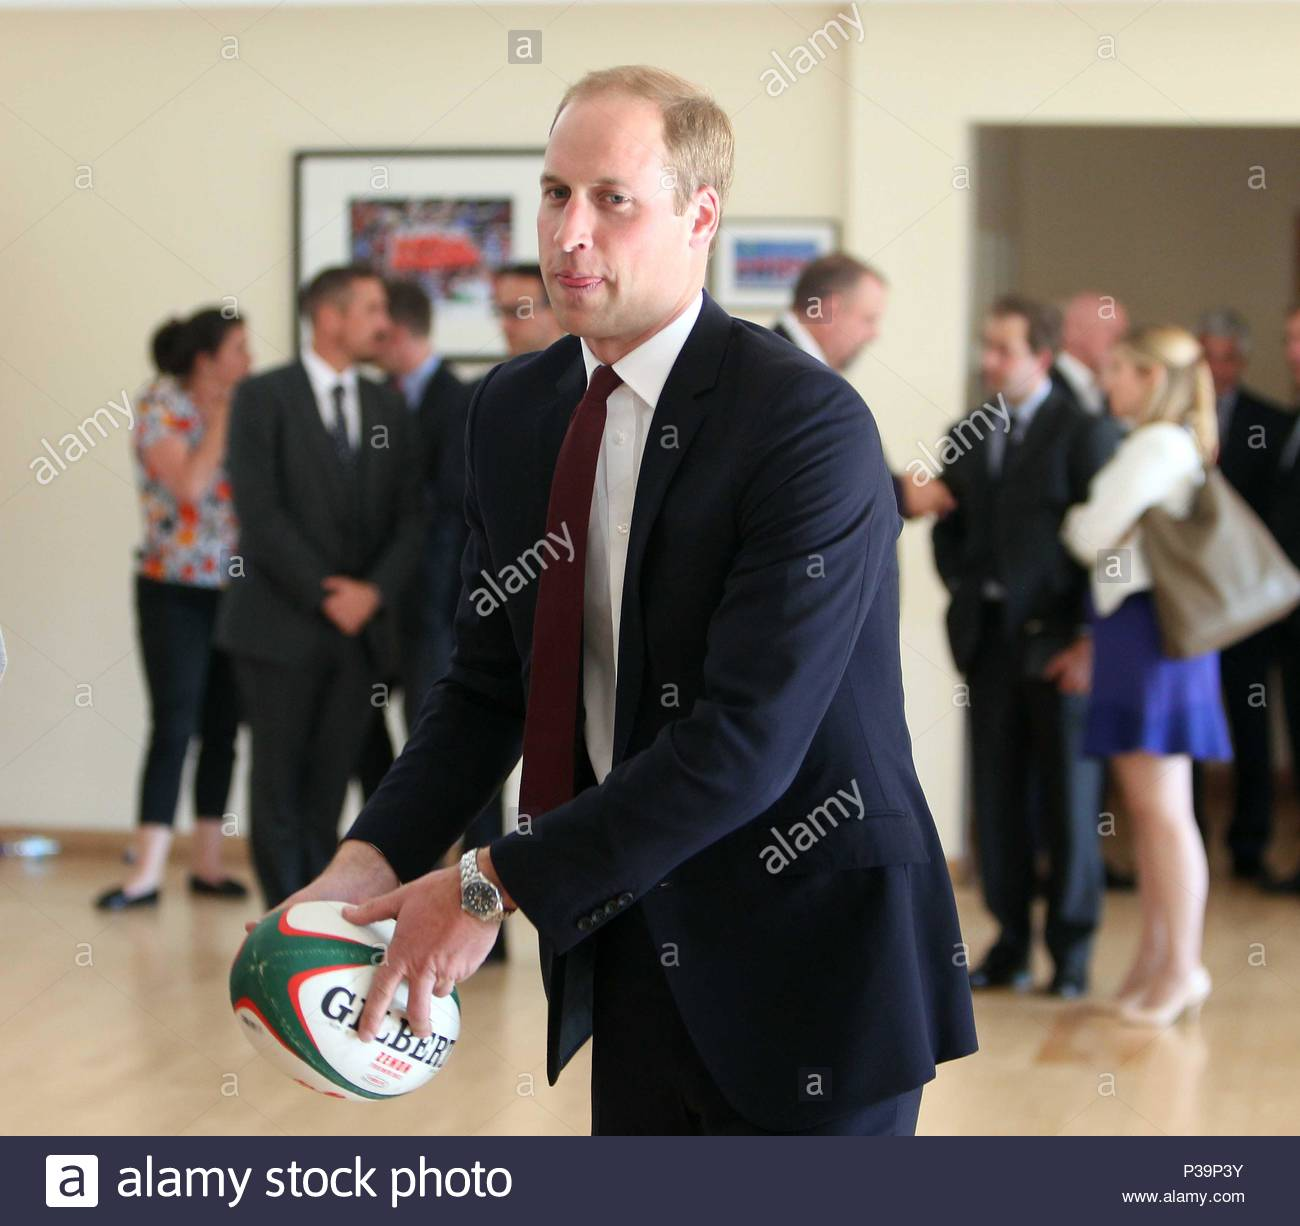 How Prince William Is Training to Become King How Prince William Is Training to Become King new picture